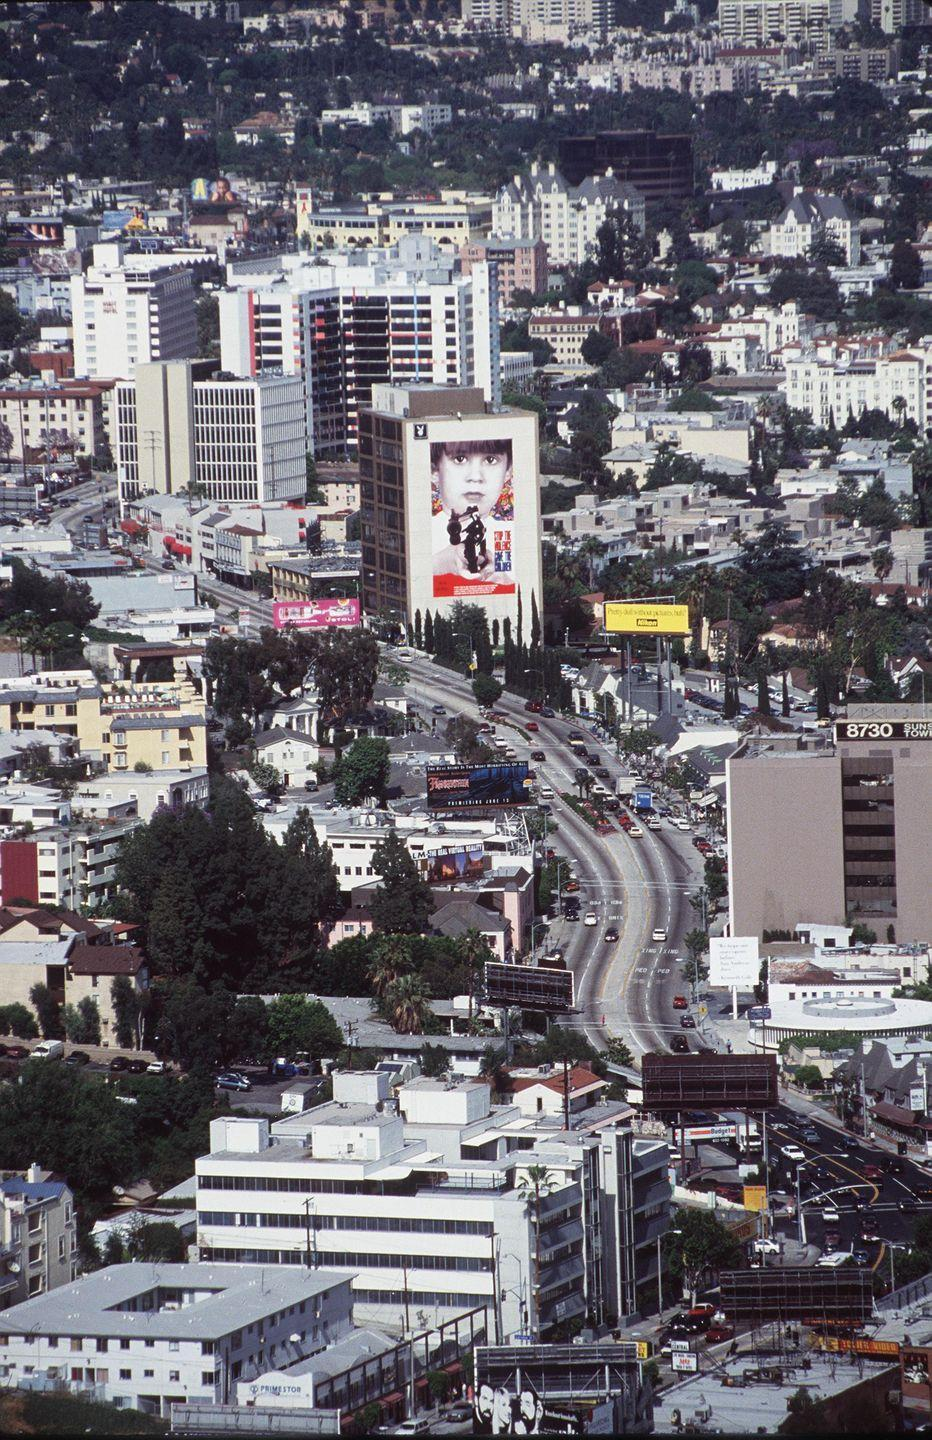 <p>The view of the Sunset Strip from a helicopter. <br></p>